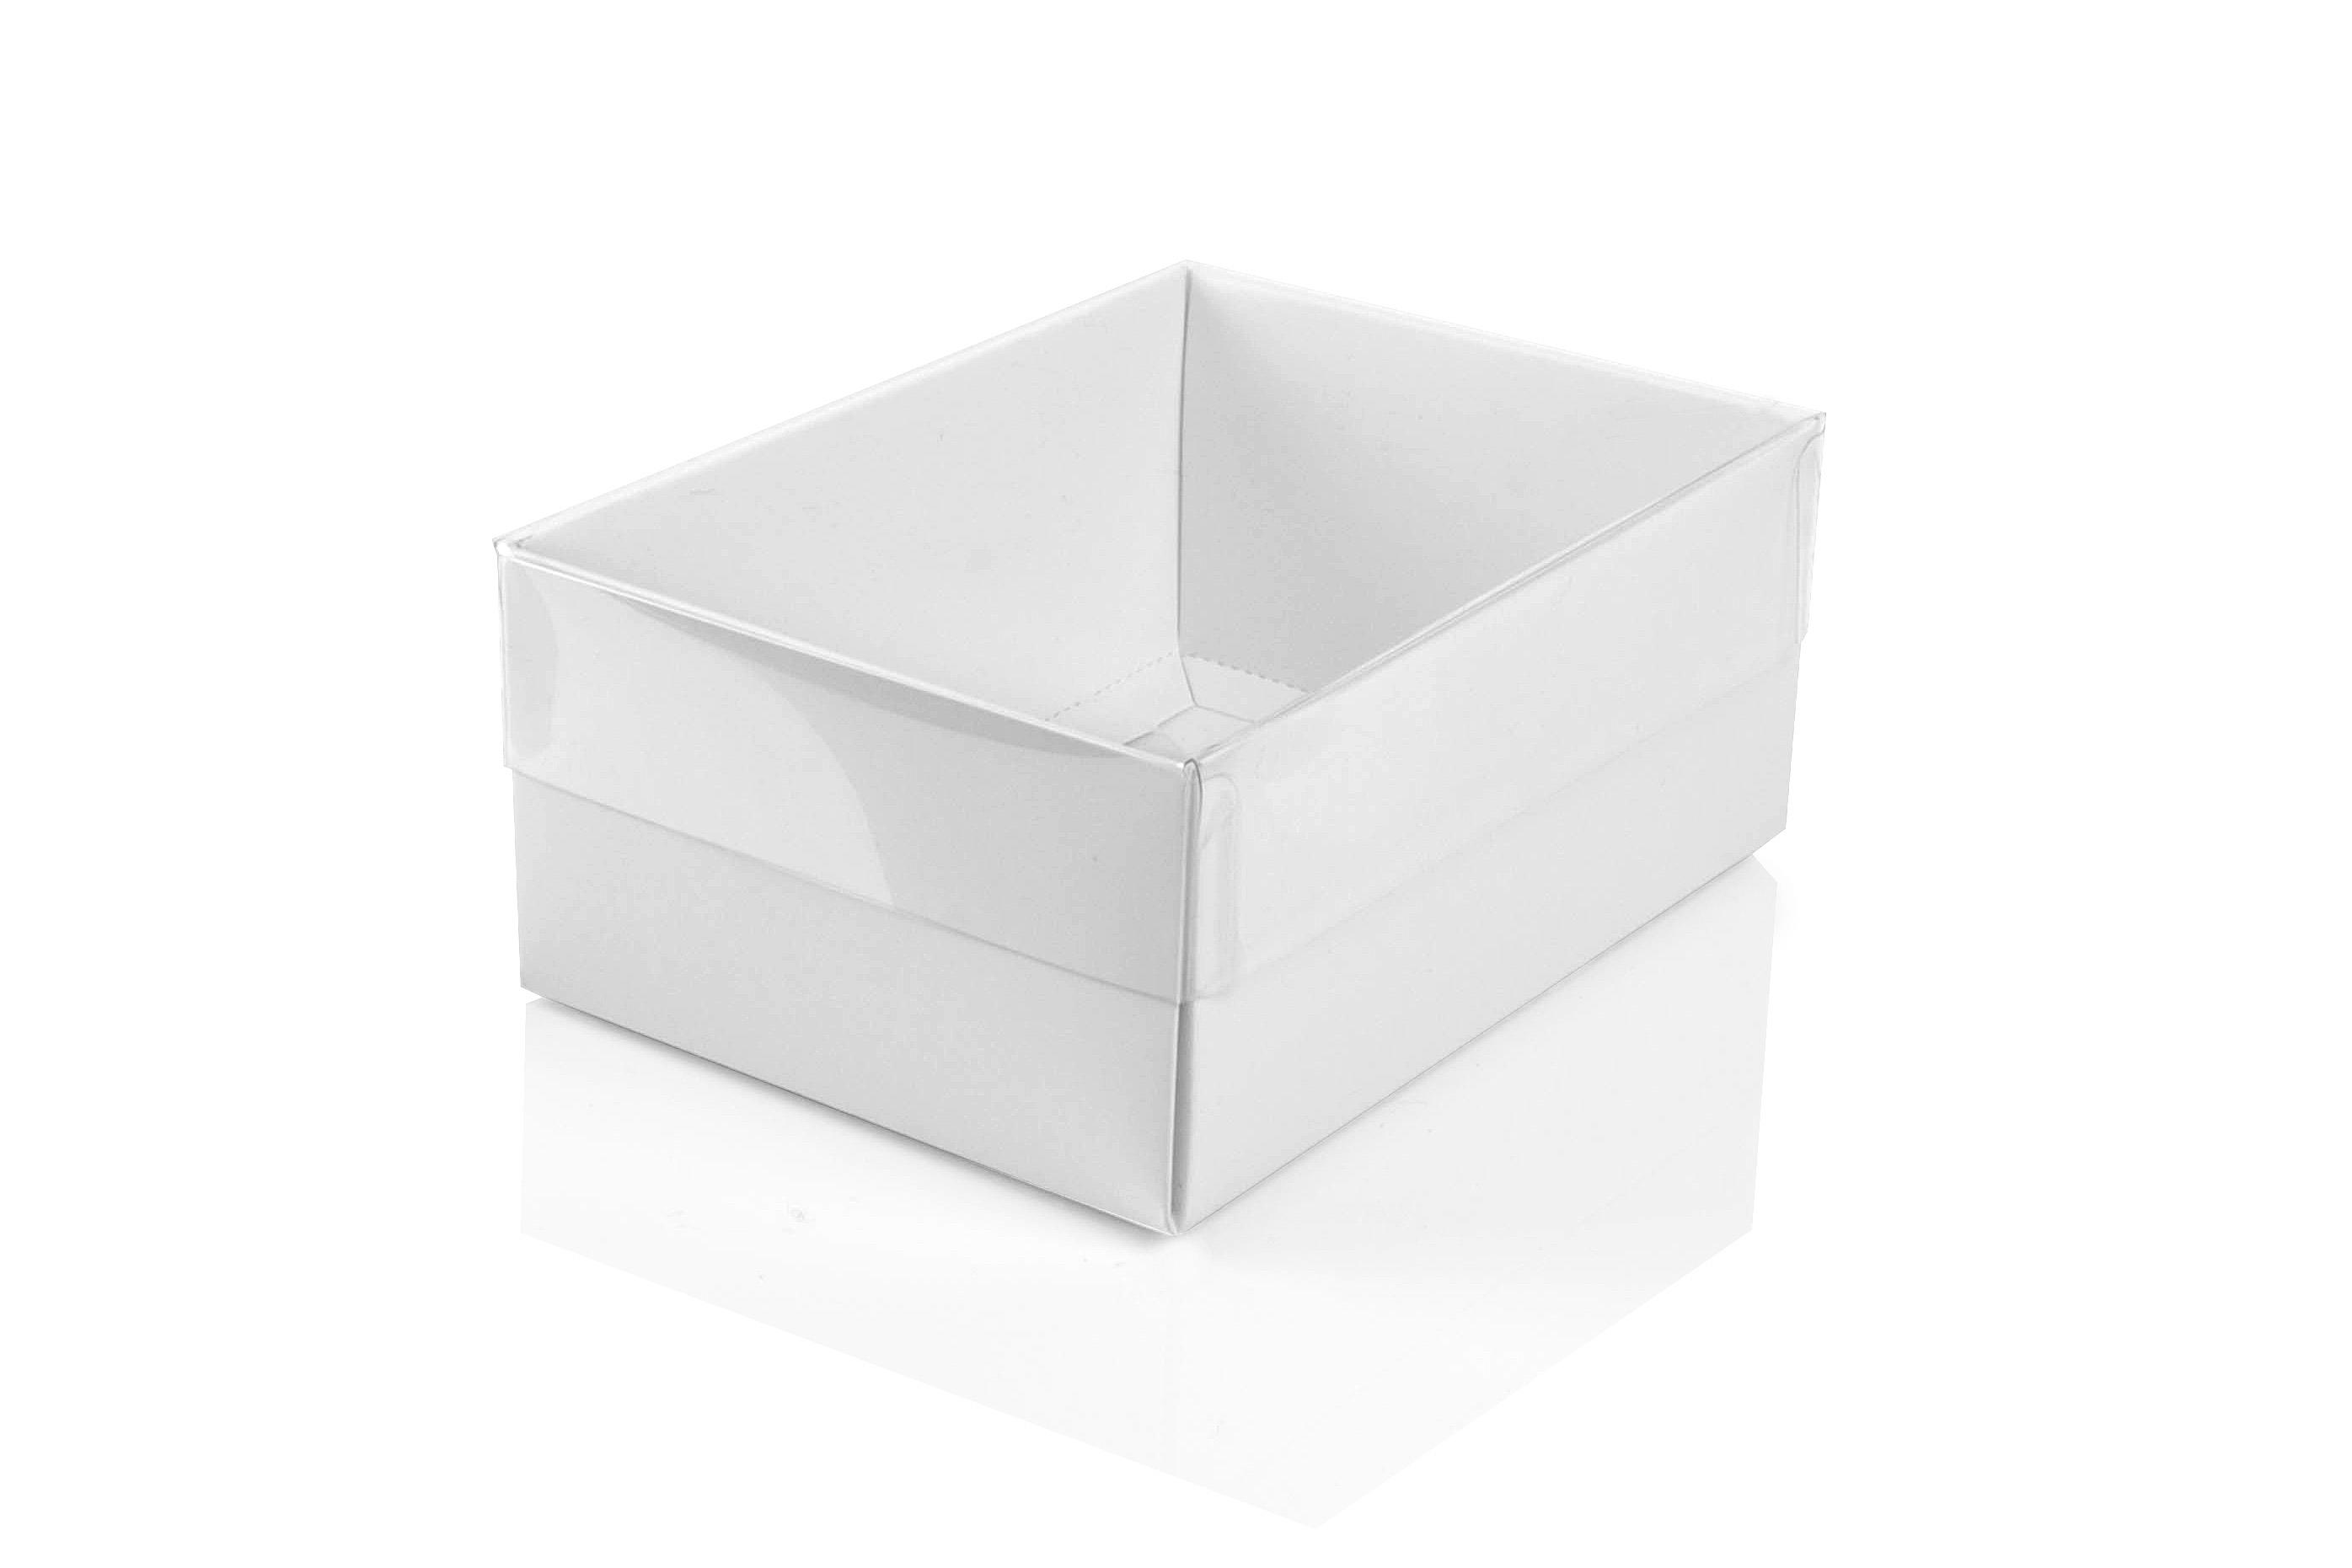 Small White Flat Packed Recycled Gift Box With Clear Lid Pack Of 50 120 X 85 X 50mm Clrwh120